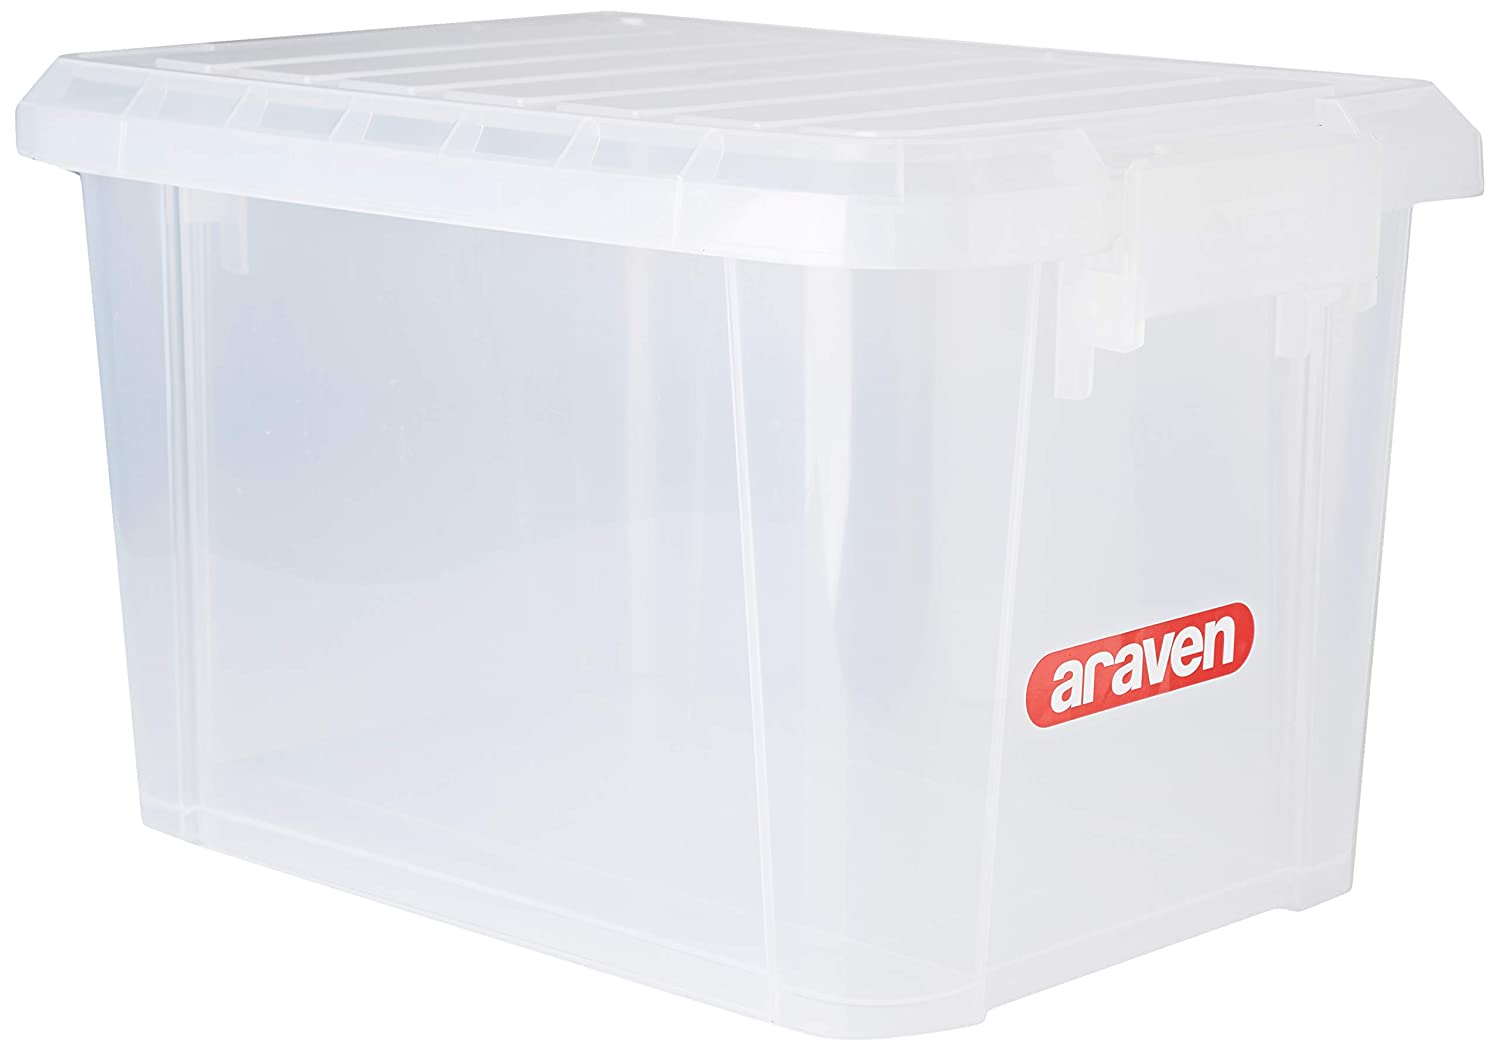 Araven Food Storage Box & Cover Capacity: 3.7 gallons. 9 1/16